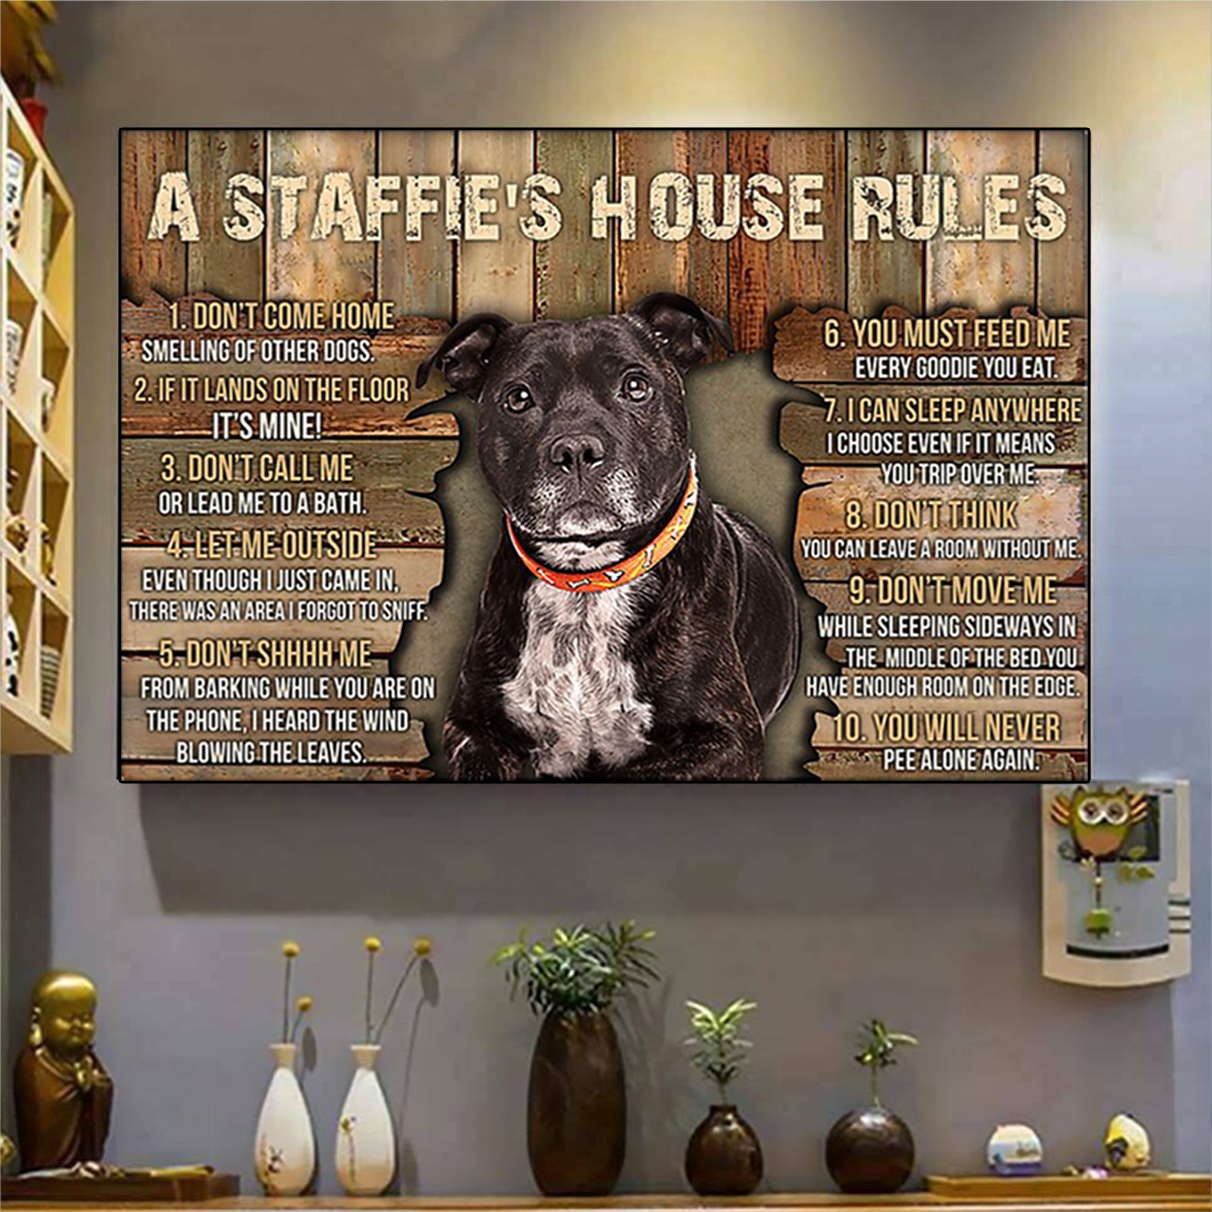 A staffie's house rules poster A3